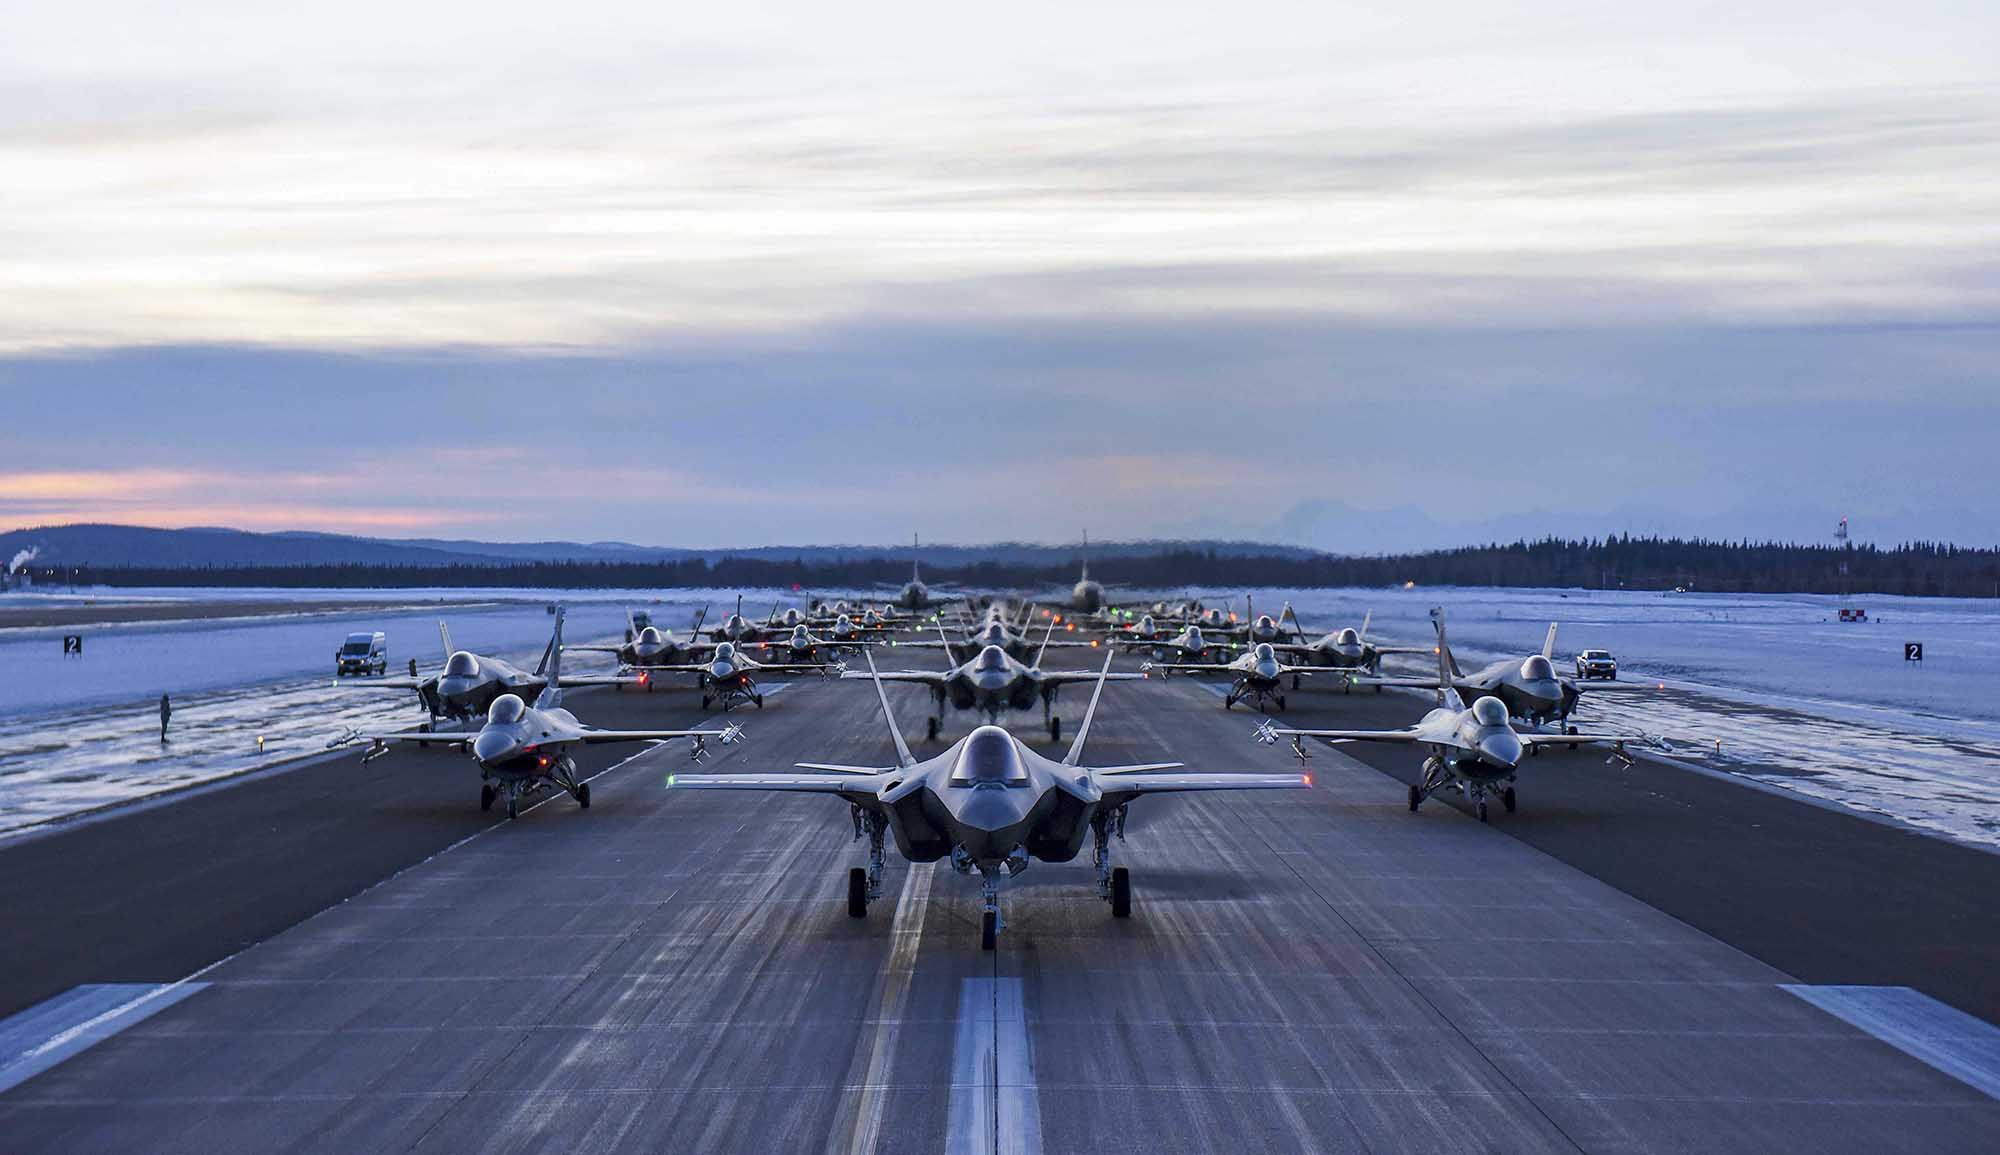 Aircraft assigned to the 354th Fighter Wing and 168th Wing park in formation on Eielson Air Force Base, Alaska, Dec. 18, 2020. Over 30 aircraft were quickly generated and prepared to launch in an effort demonstrating the readiness capabilities of the 354th Fighter Wing and the 168th Wing. (Senior Airman Keith Holcomb/Air Force)